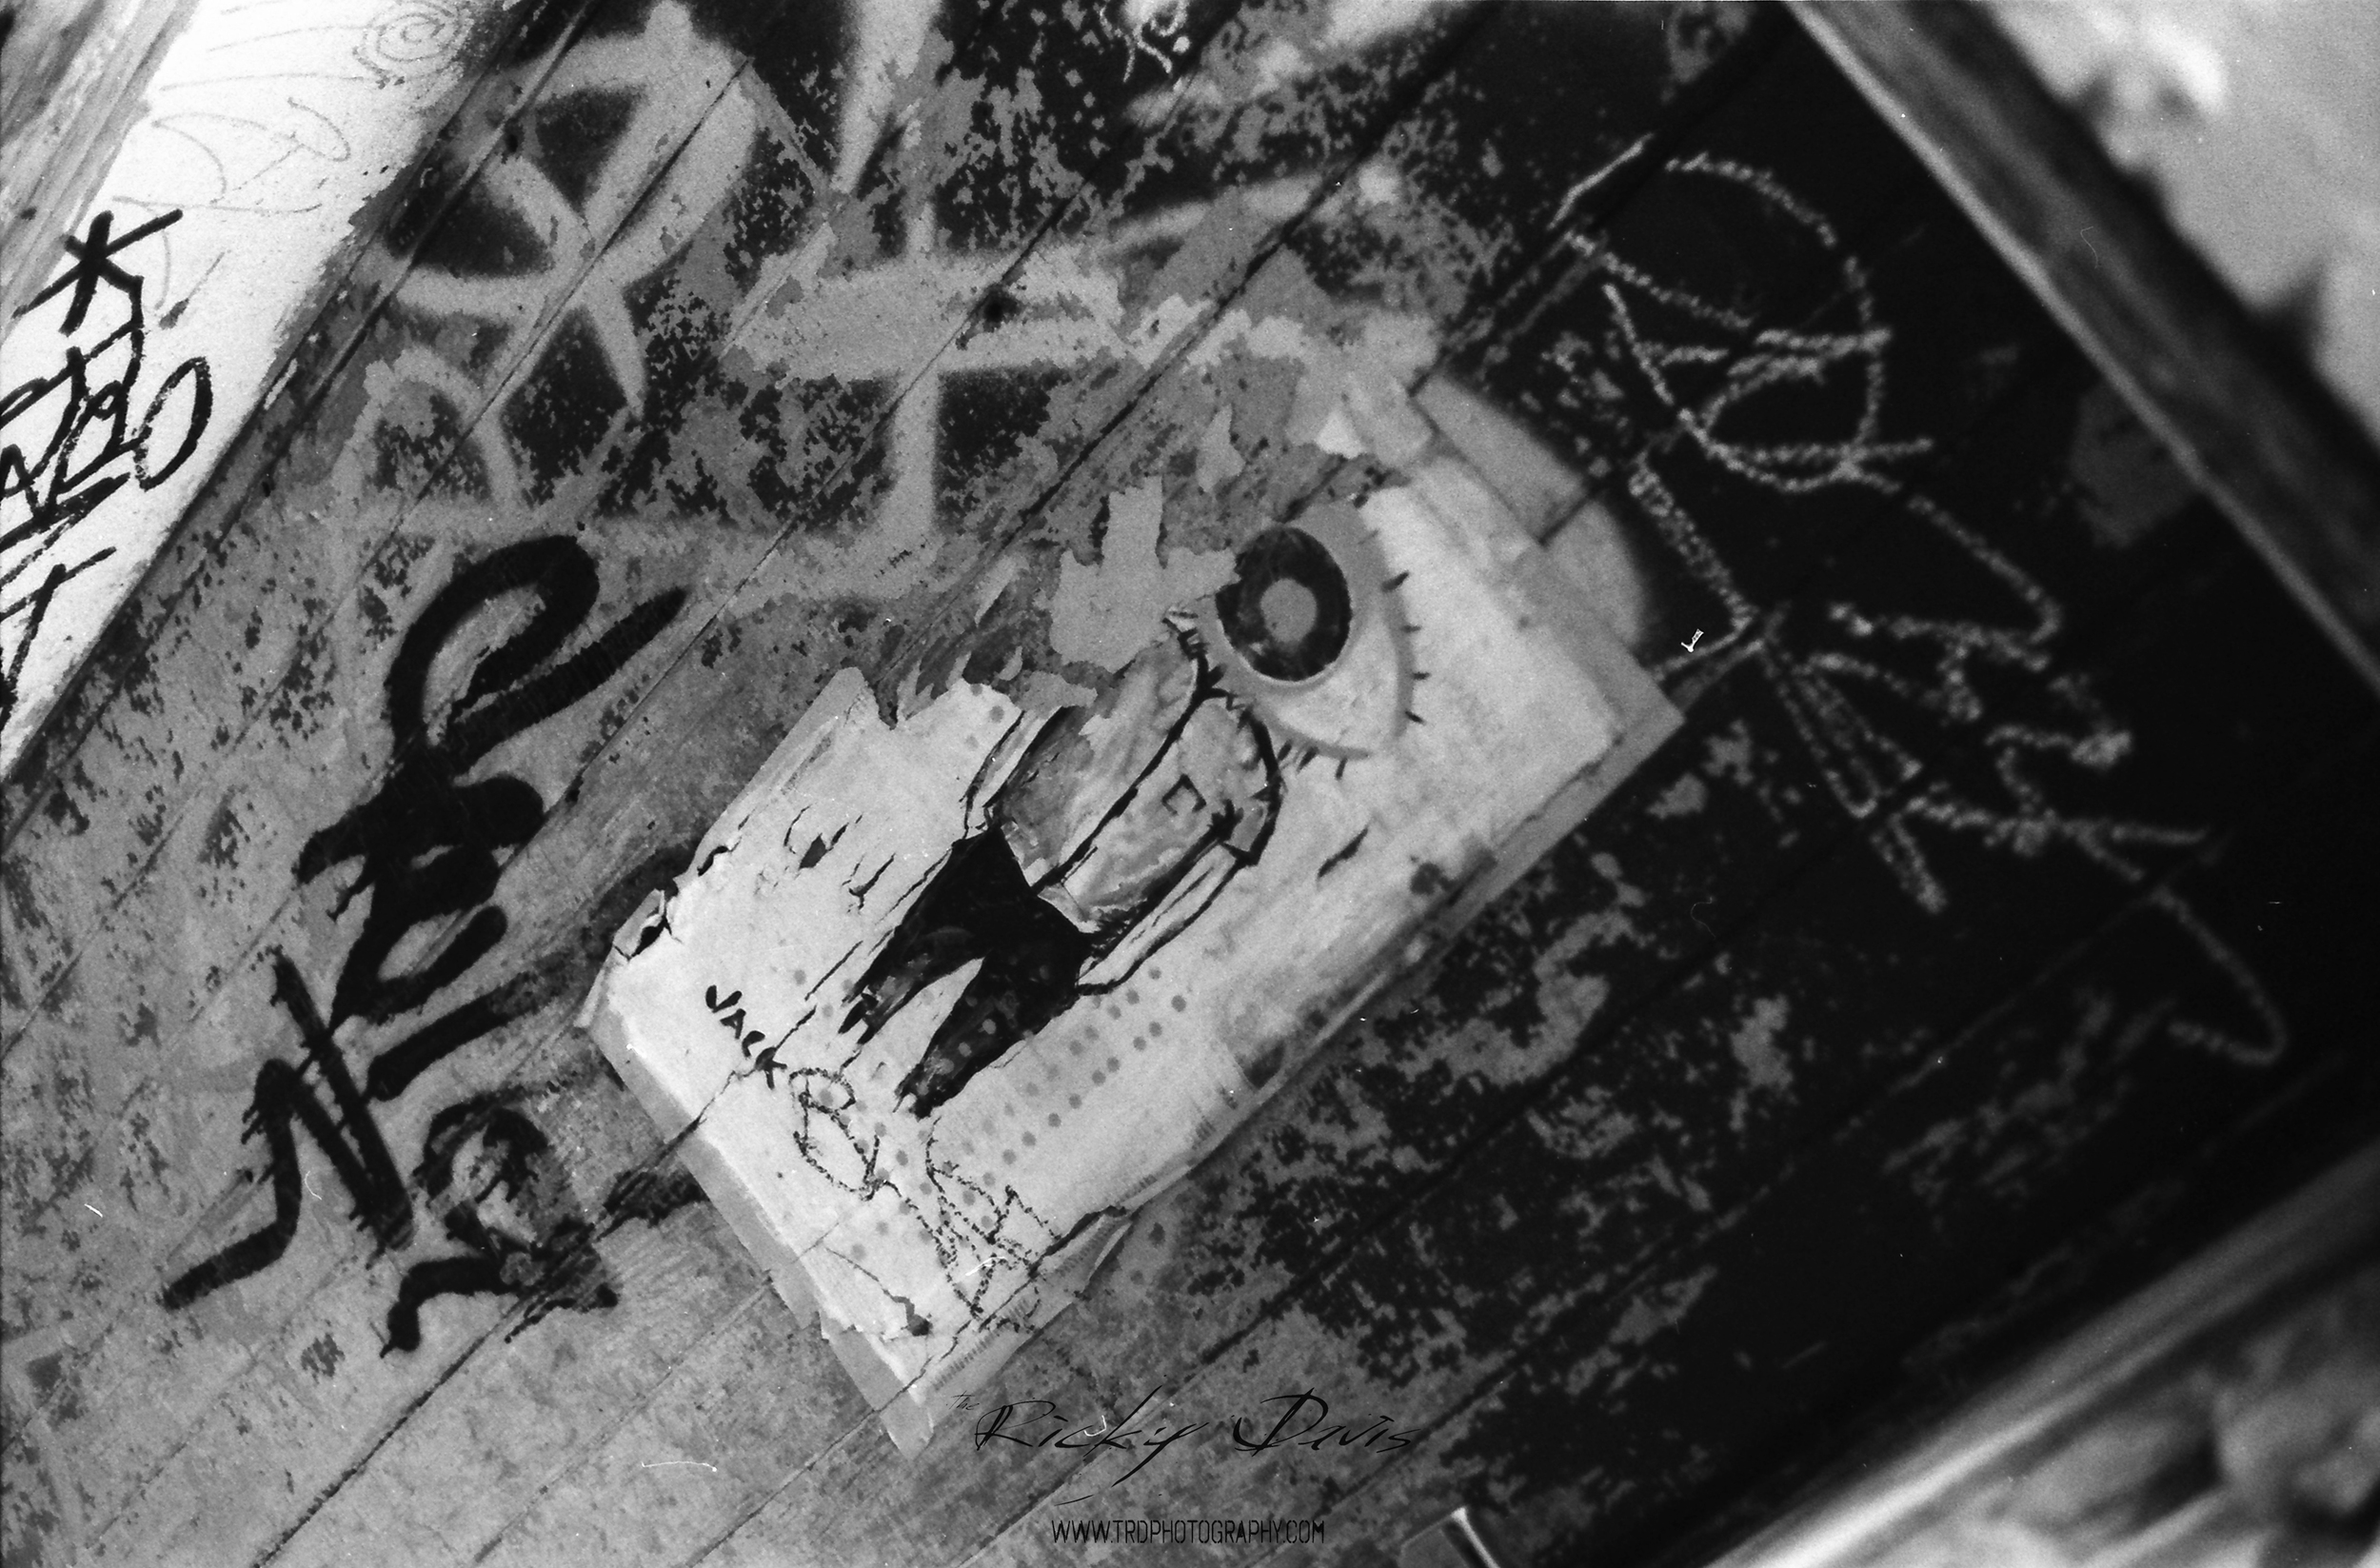 It's all about the eye. Street Art - Chattanooga, TN - Film - Expired Neopan SS - Camera - Minolta XG 1 - Photographer Ricky Davis